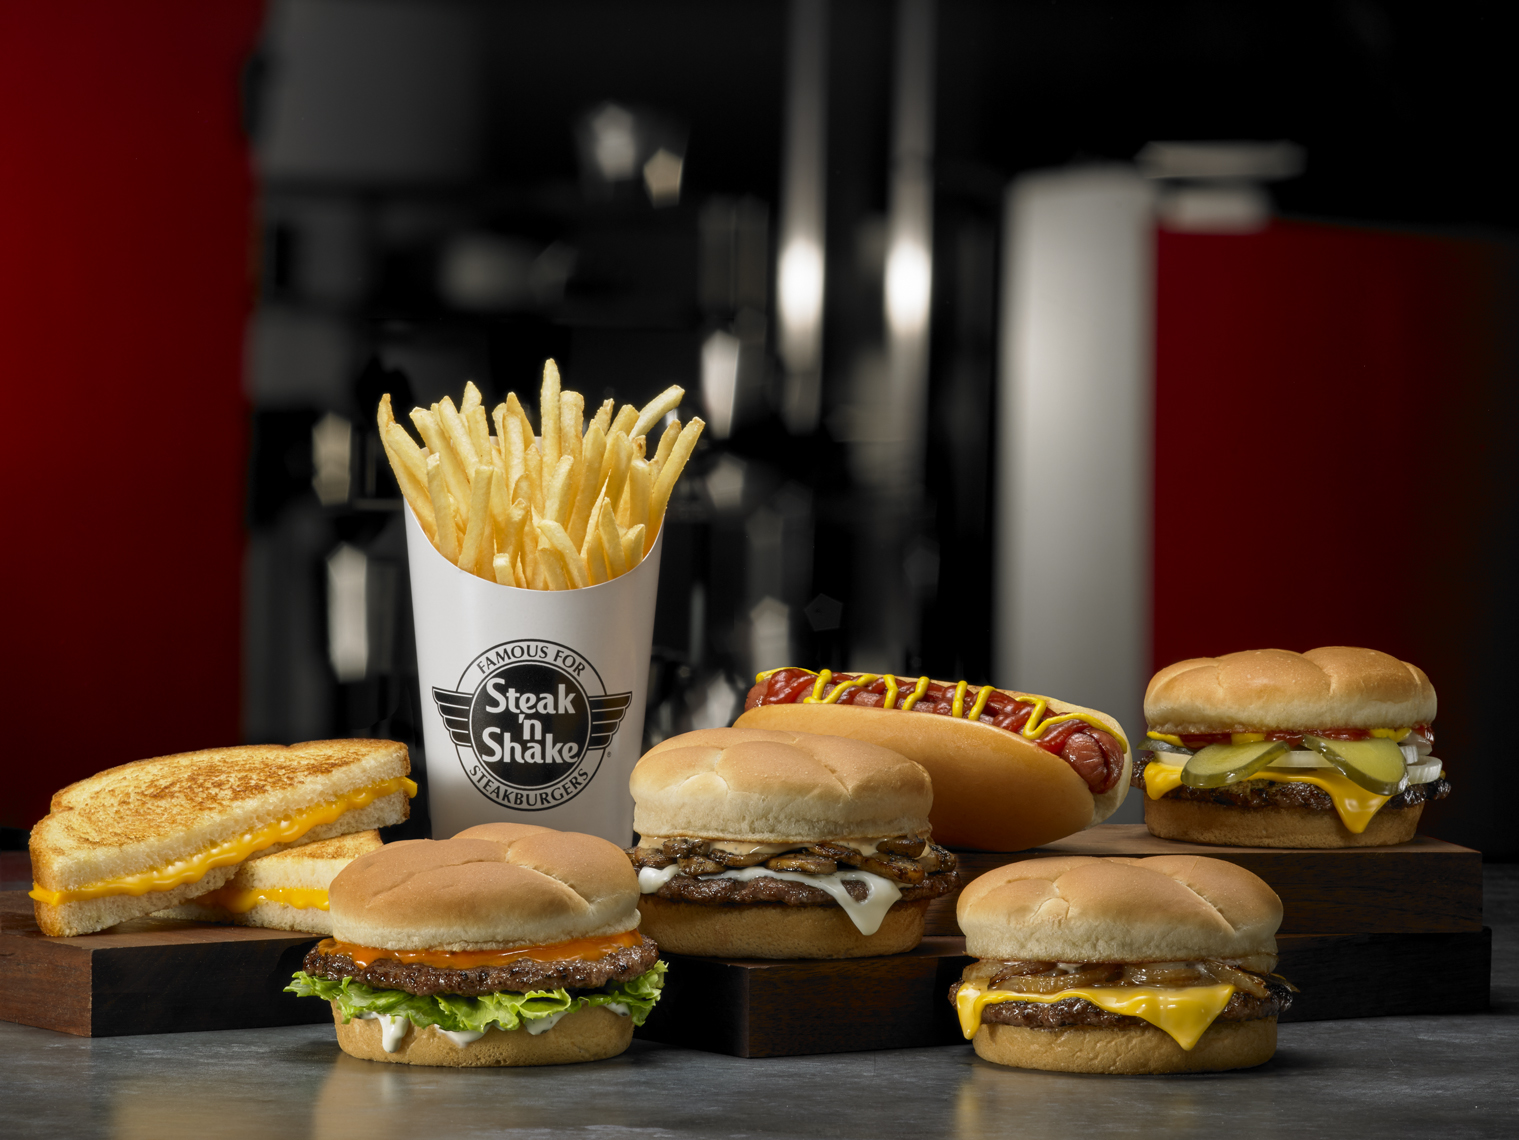 schrom-steak n shake-62718_comp_1